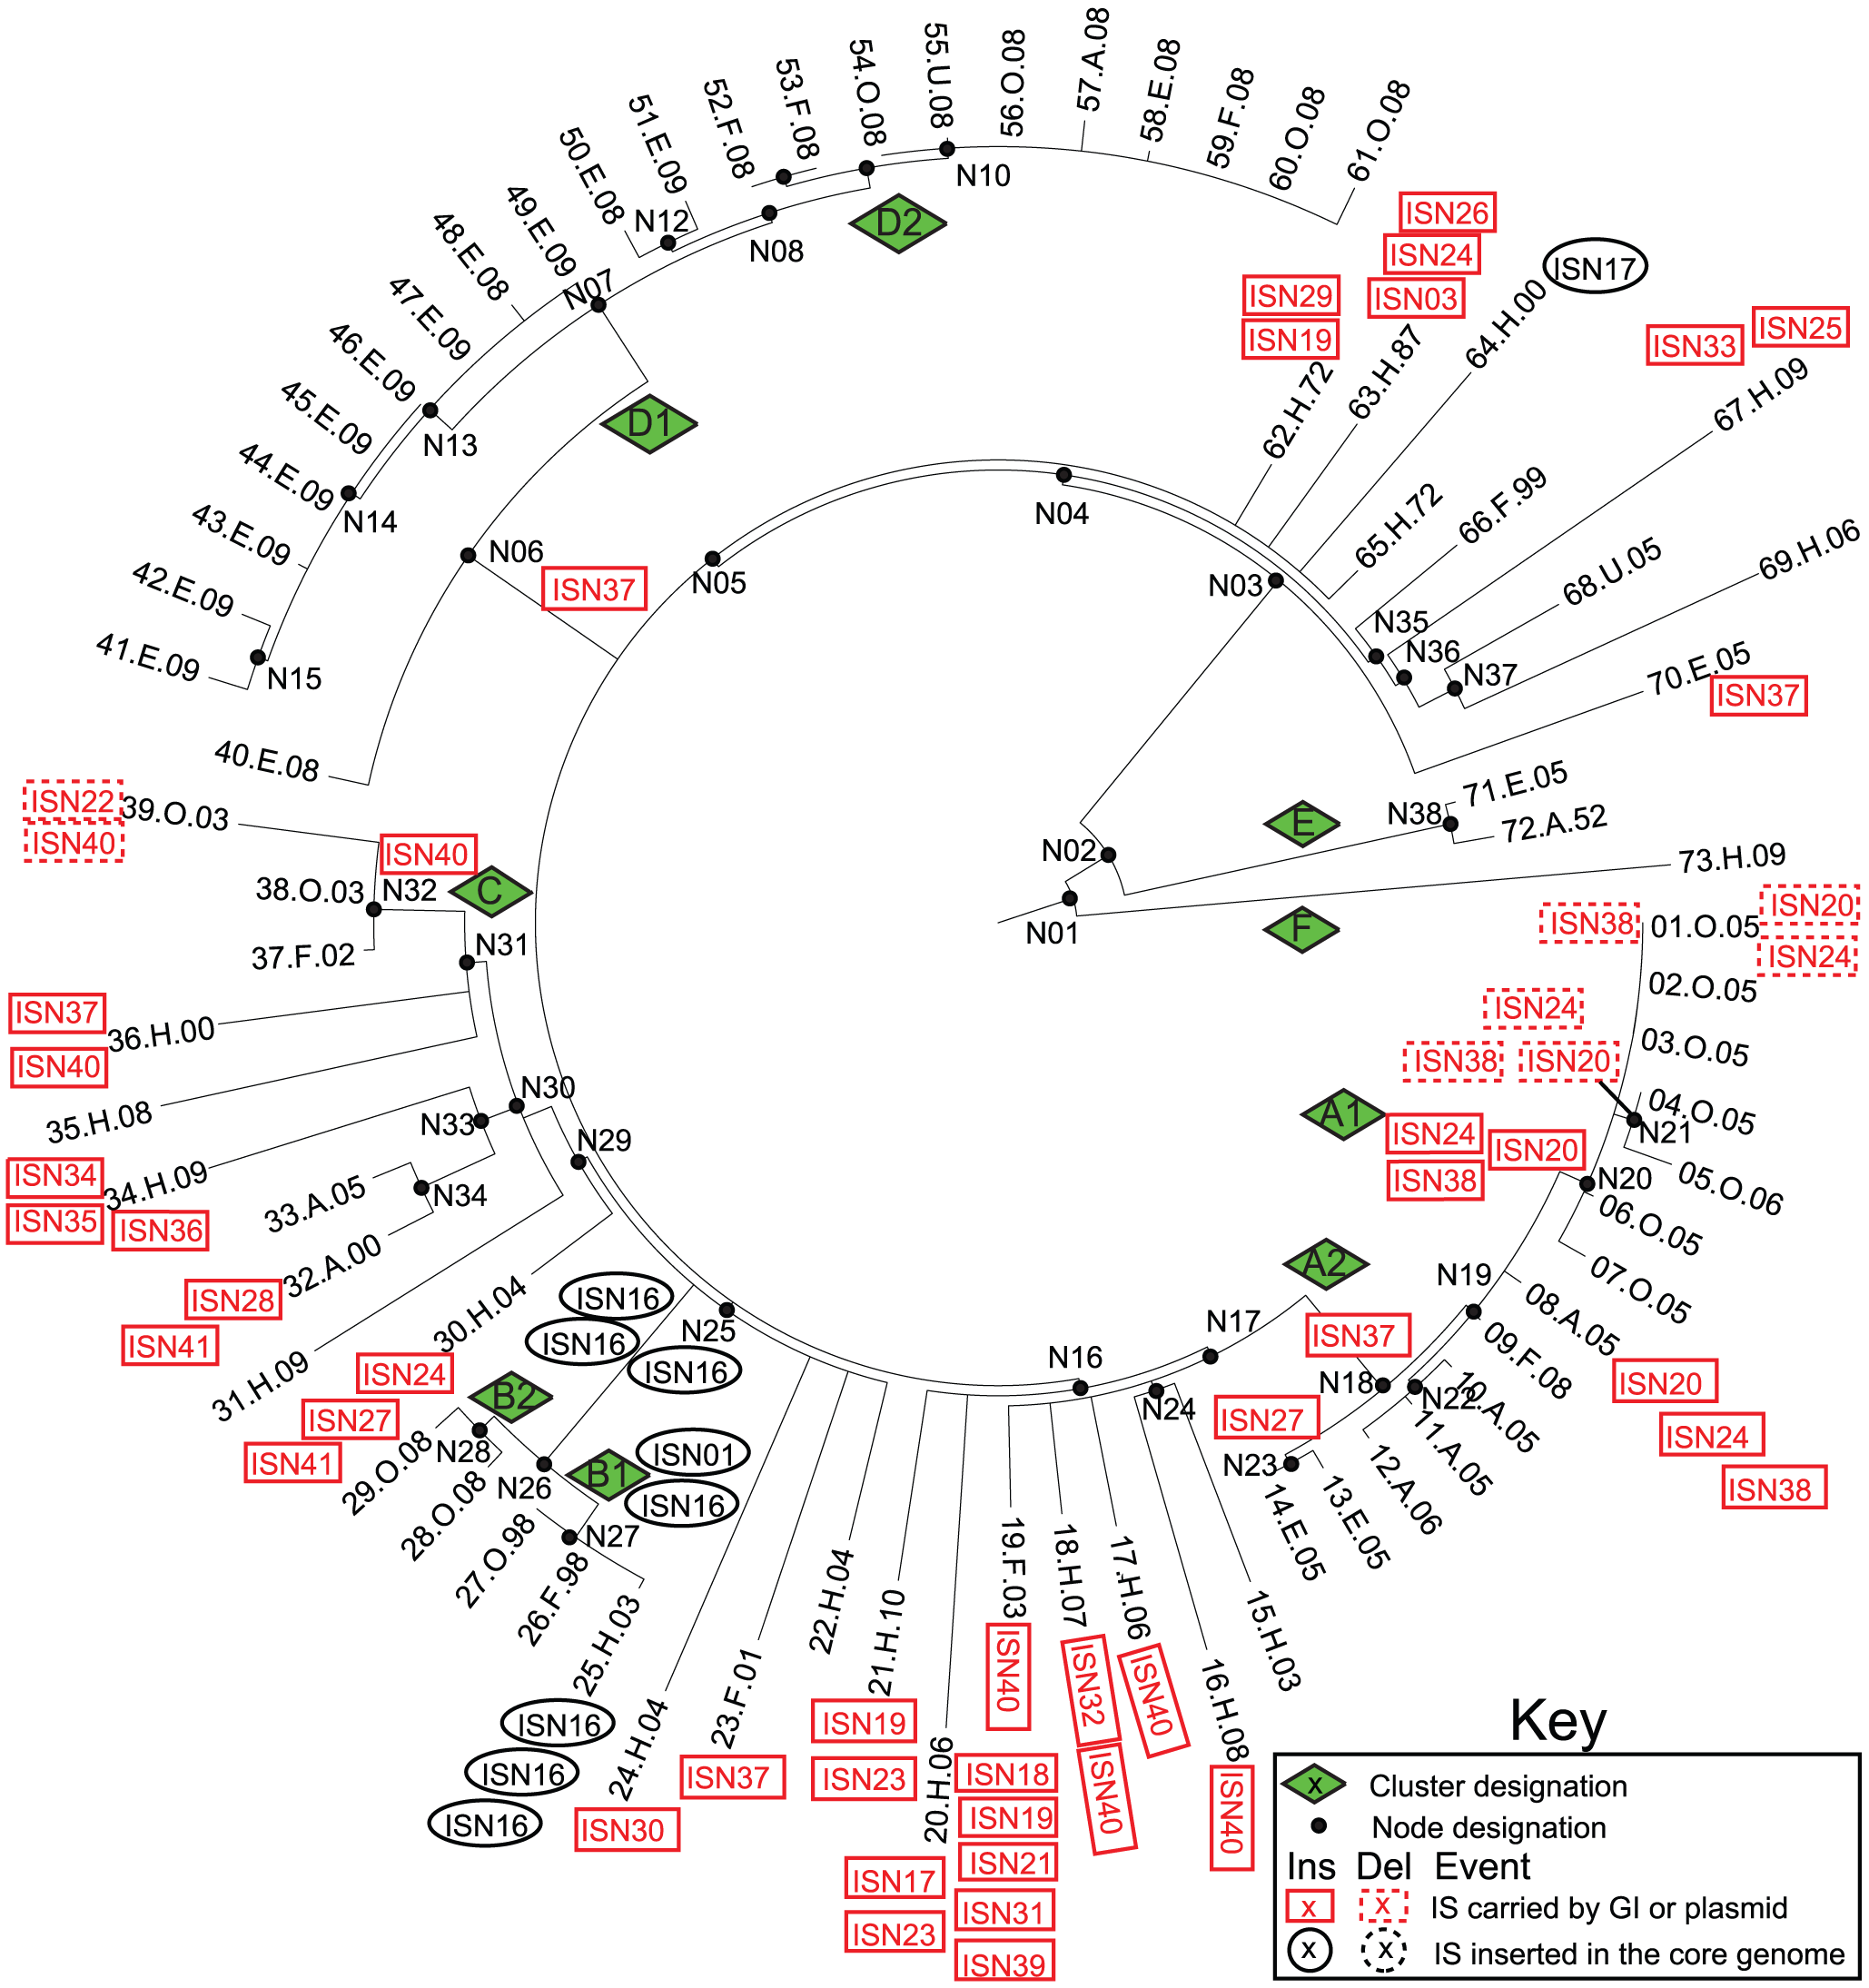 Insertions (solid lines) and deletions (dashed lines) of IS elements (<em class=&quot;ref&quot;>Tables S7</em>, <em class=&quot;ref&quot;>S8</em>, <em class=&quot;ref&quot;>S9</em>) in mobile elements (red boxes) or the core genome (black ellipses) mapped on a SNP genealogy of 73 Agona genomes.